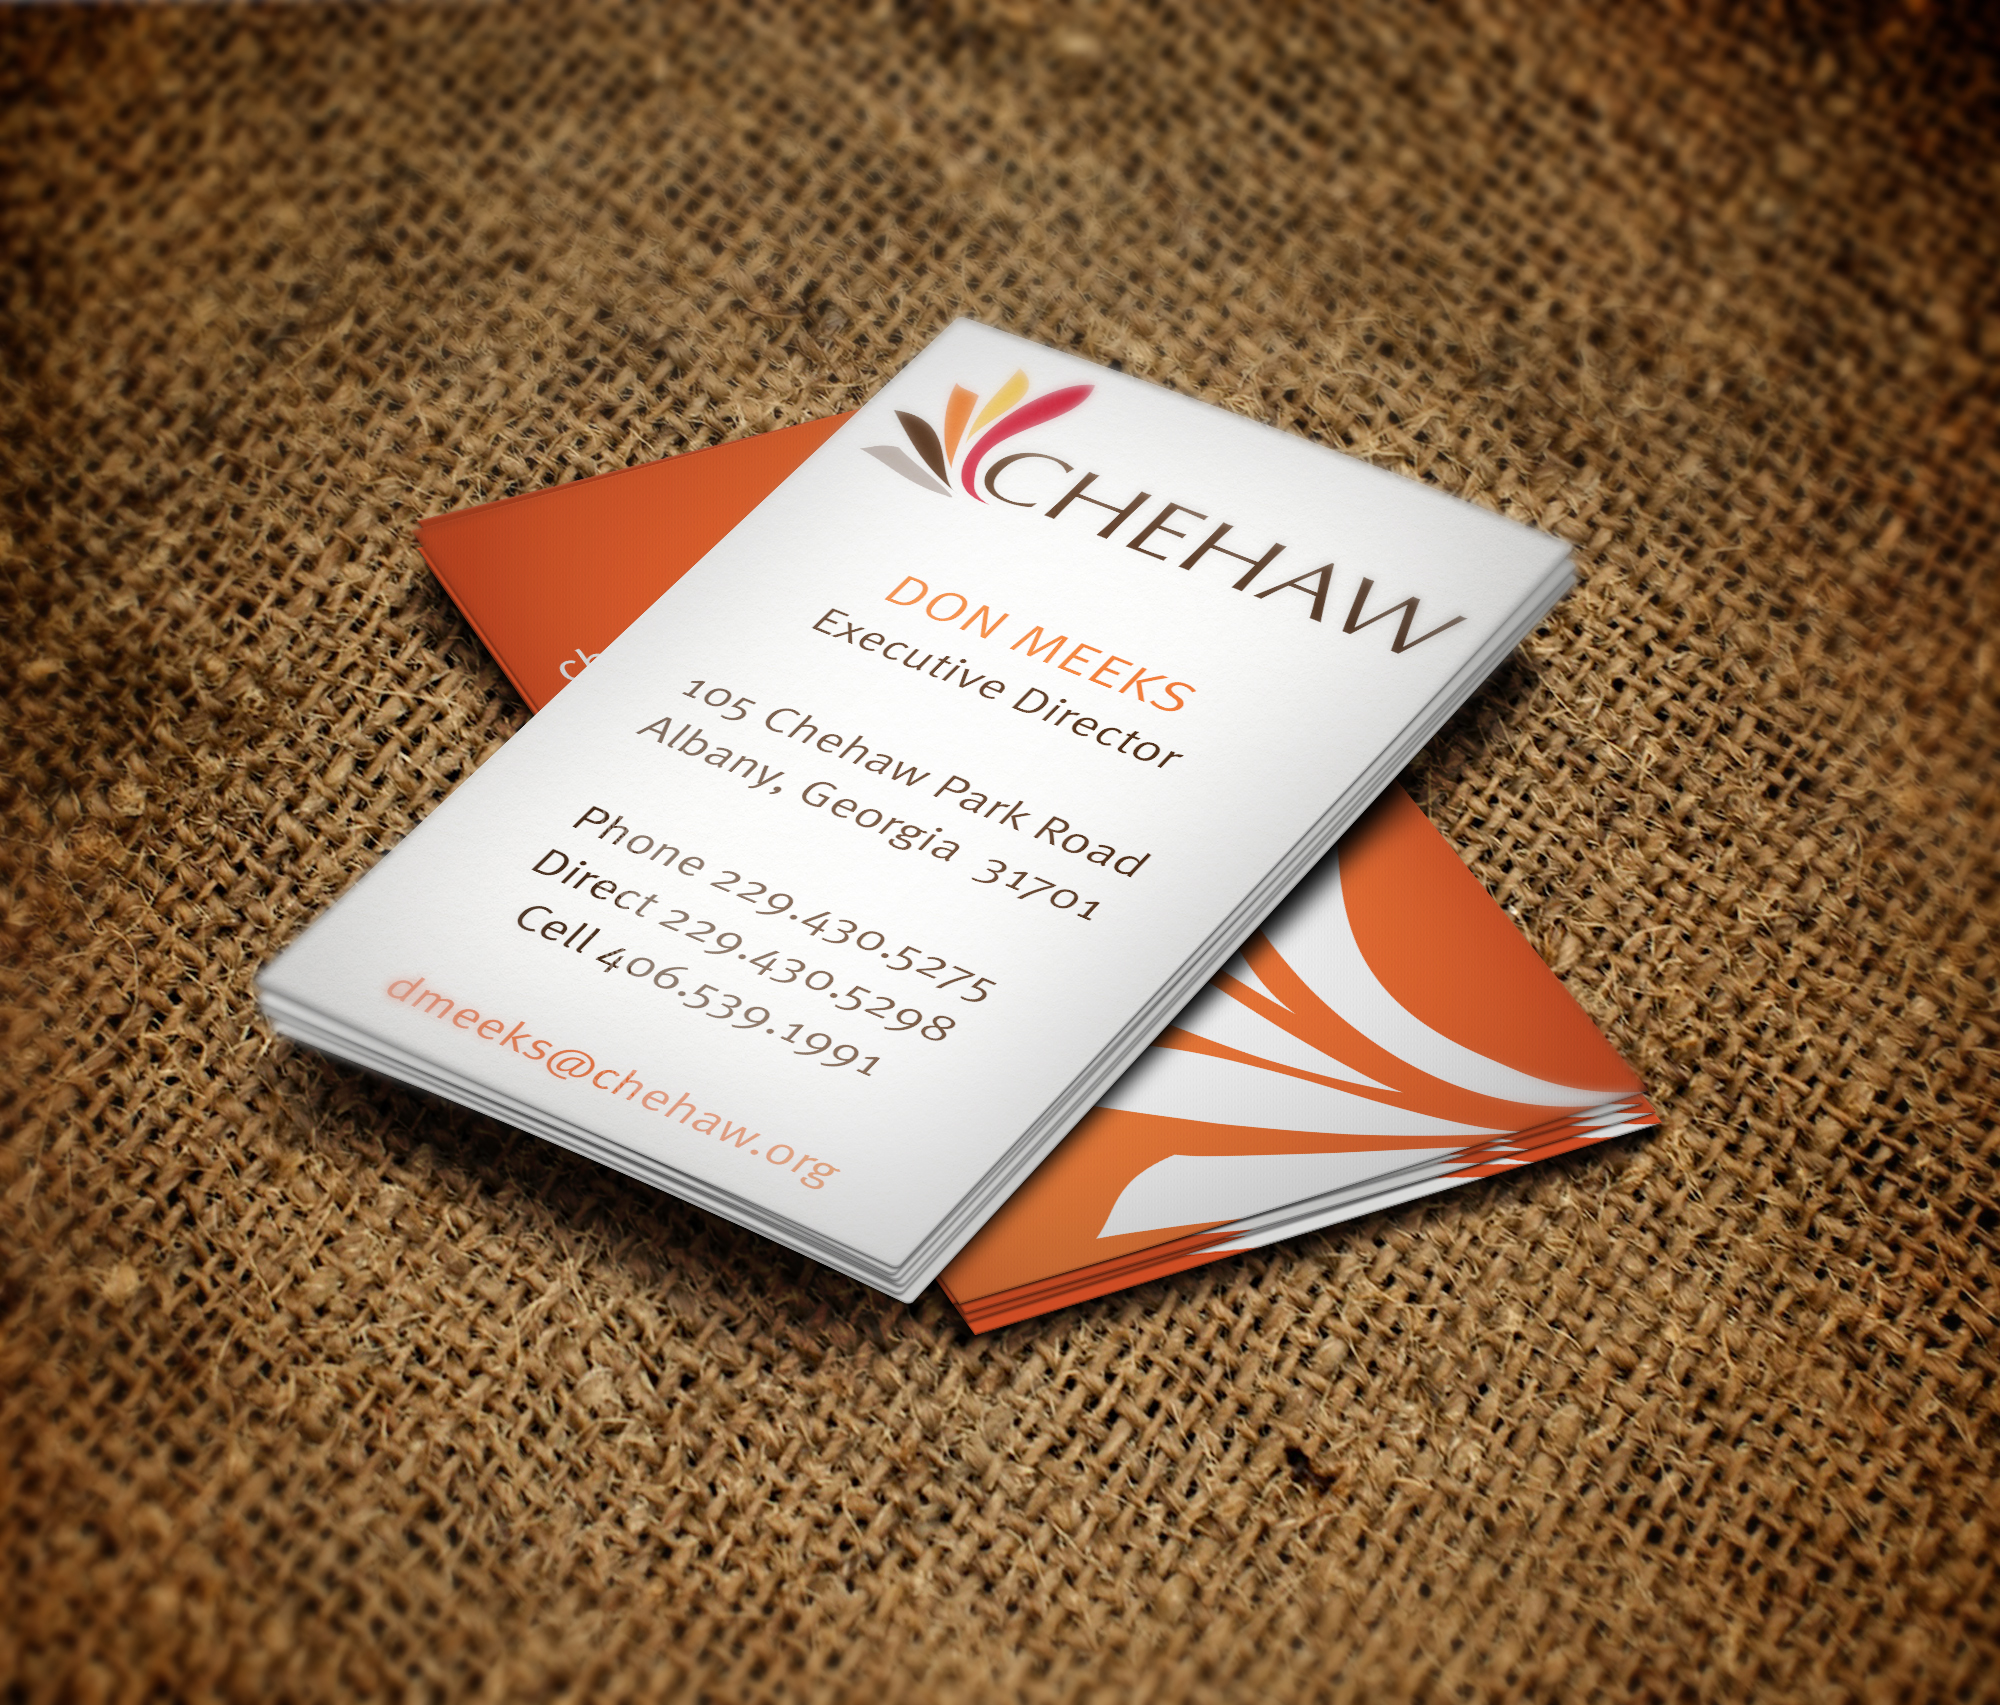 Chehaw Business_card_mock_up.jpg